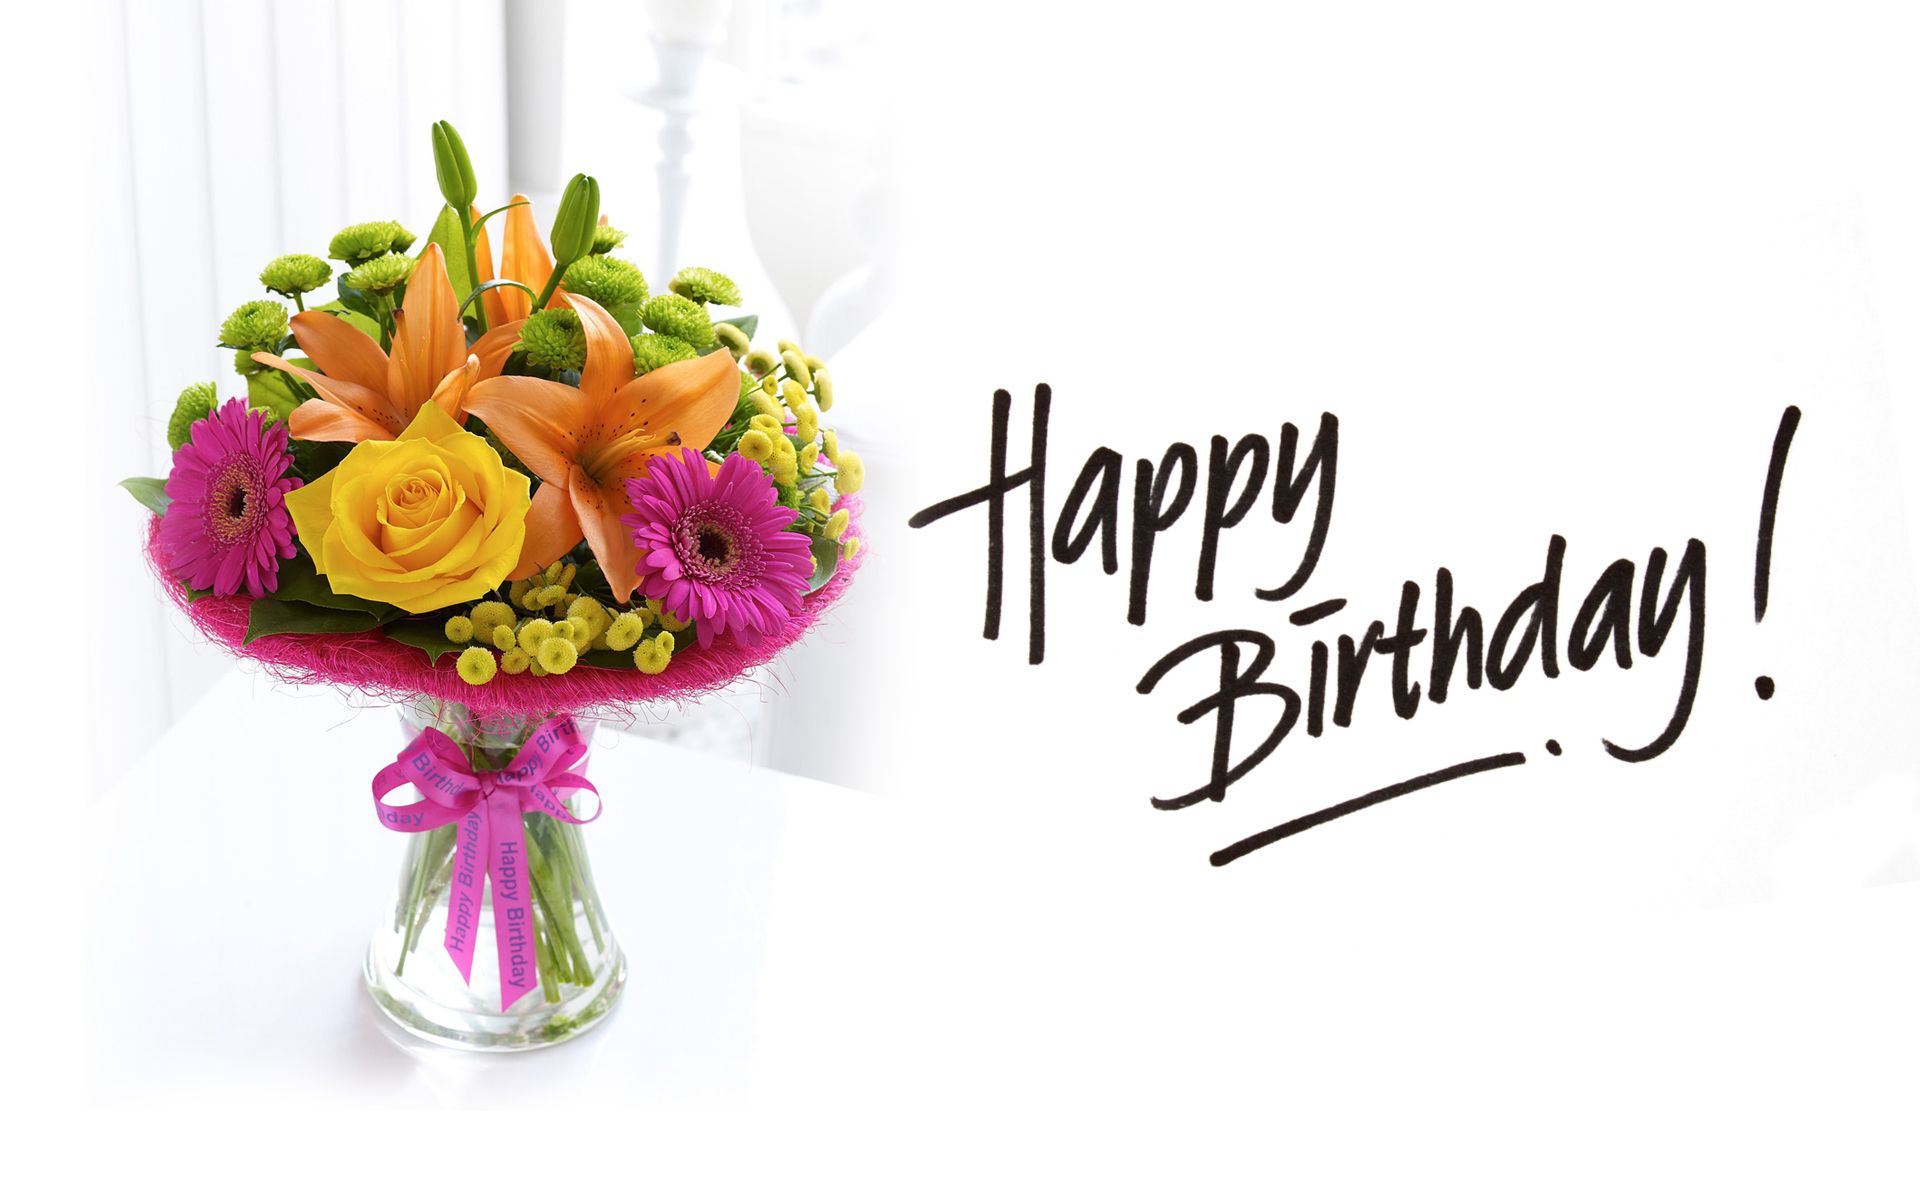 Happy birthday flowers images pictures and wallpapers happy happy birthday flowers images pictures and wallpapers izmirmasajfo